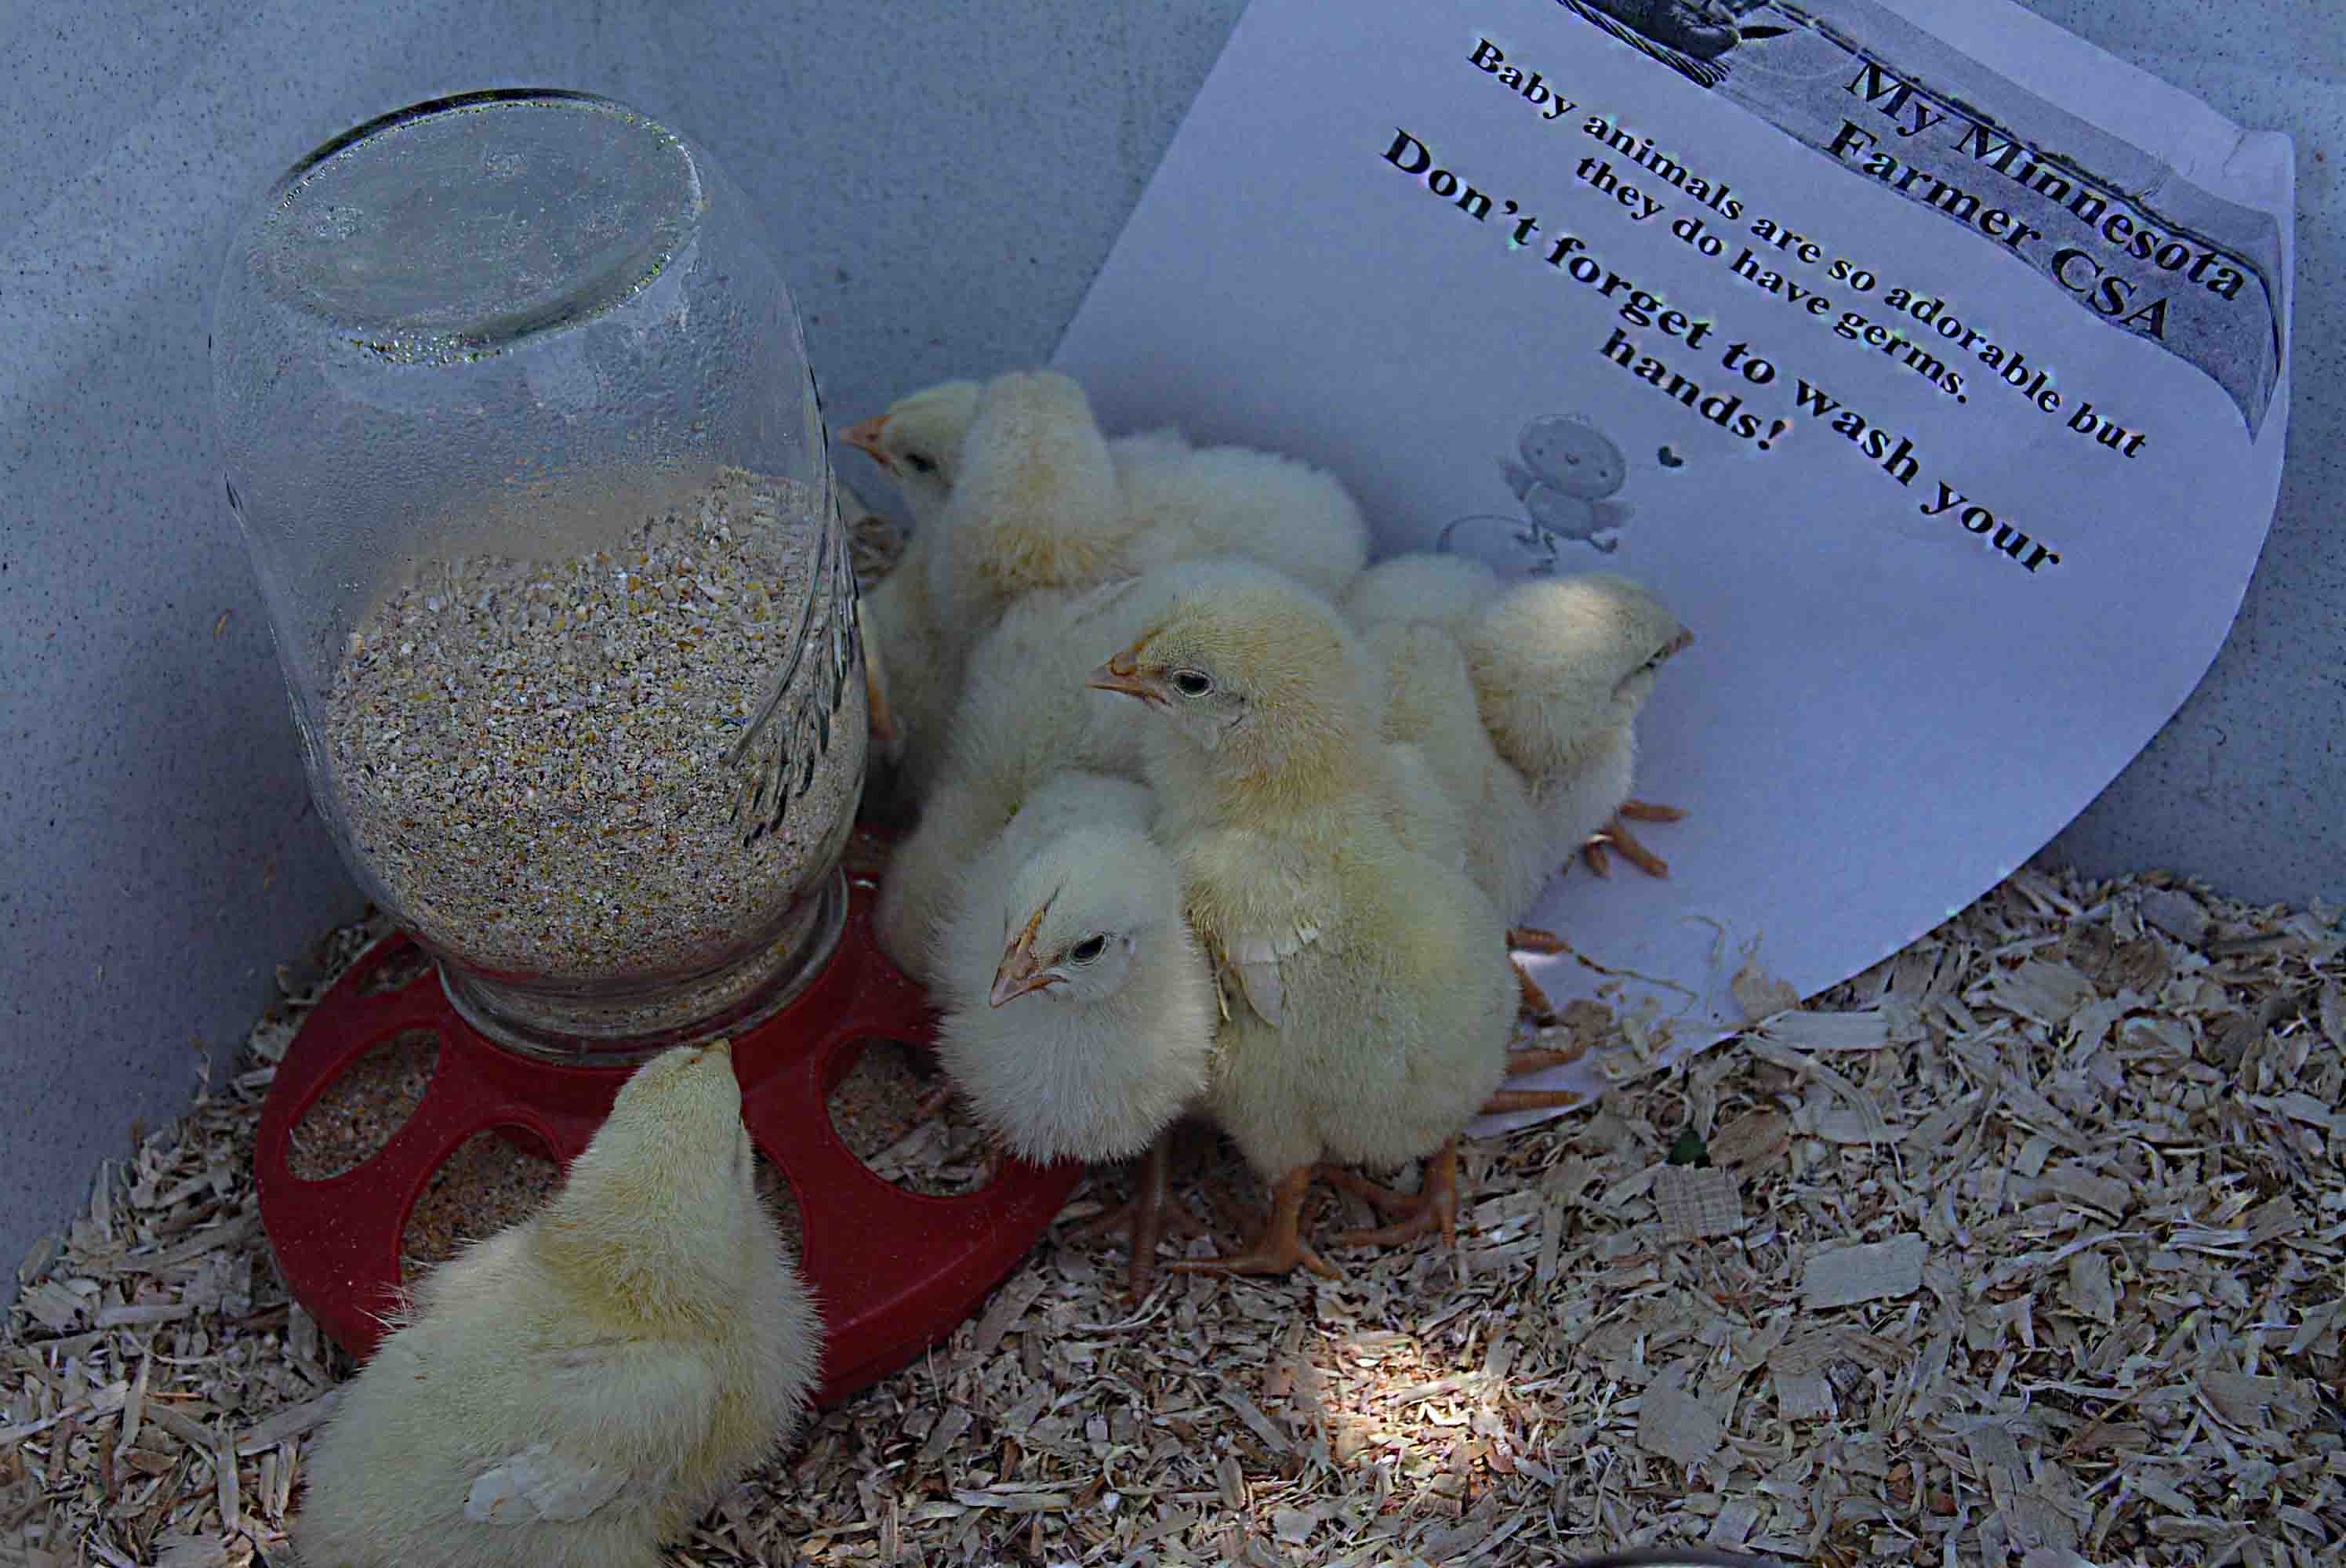 Save the Date! Come visit the farm and hold the animals Sunday May 20th.